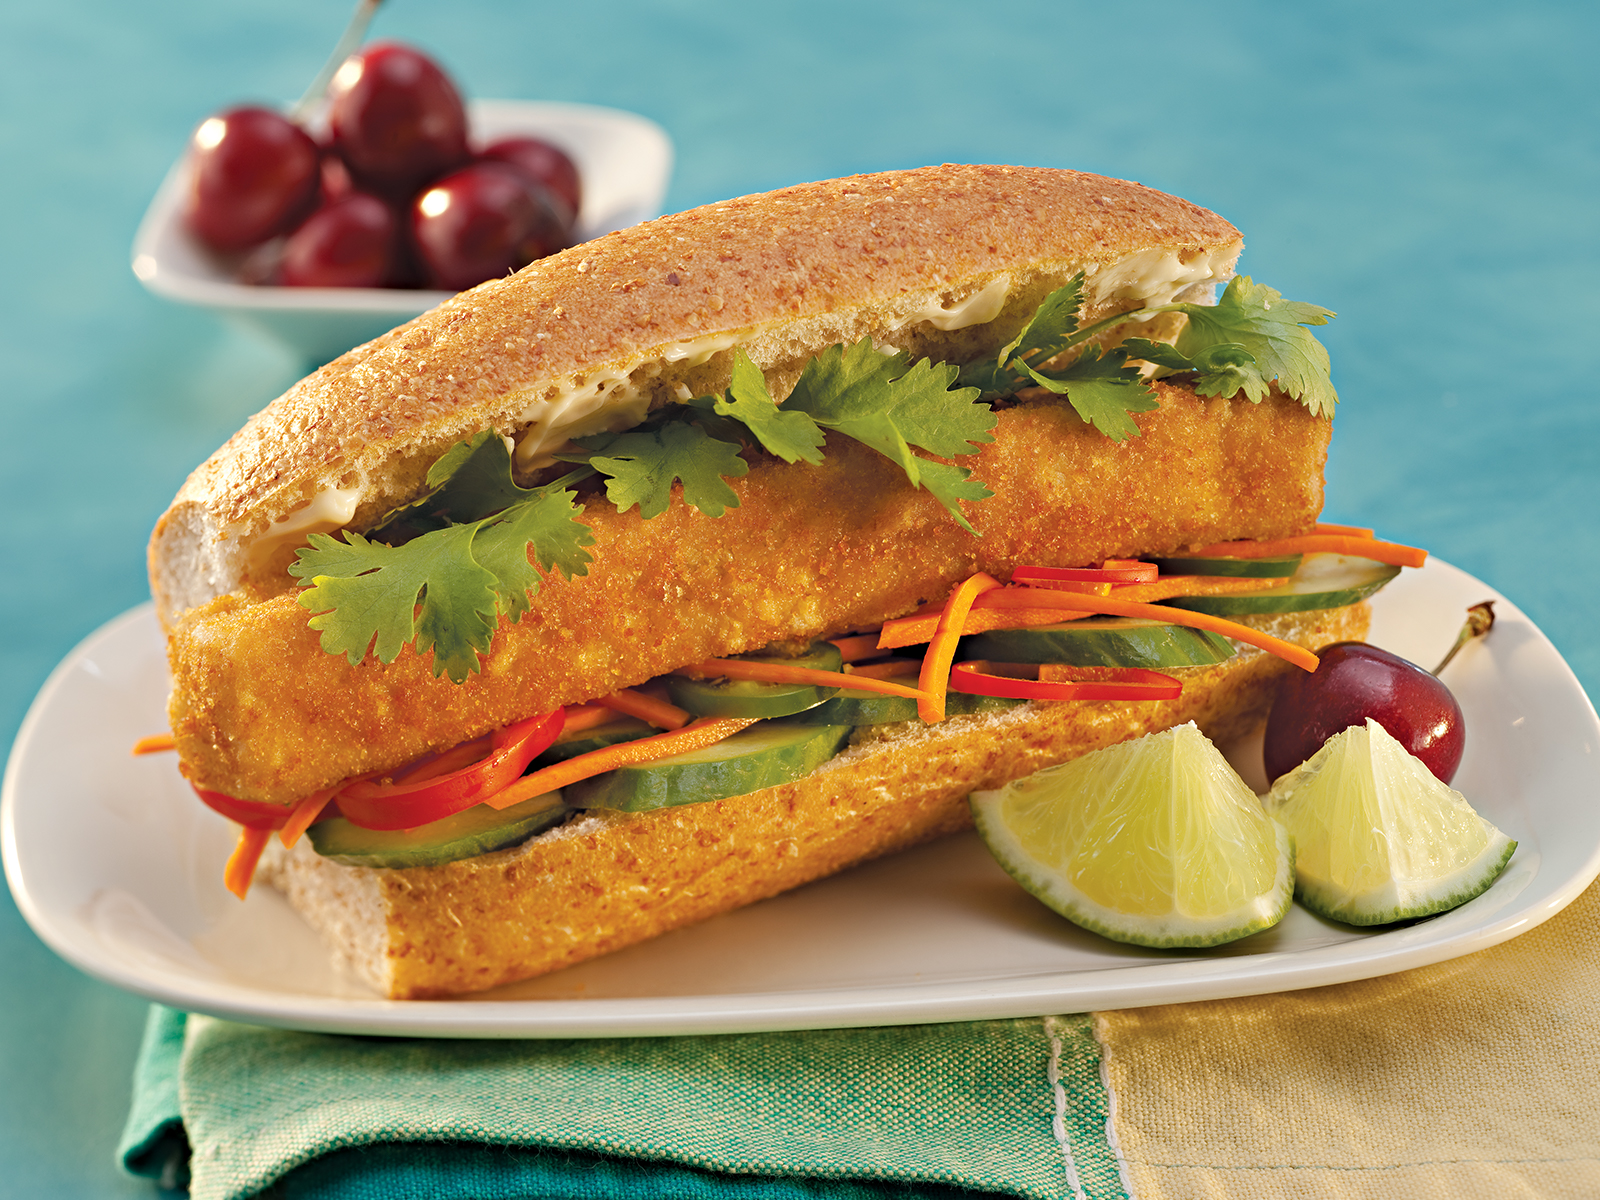 Breaded Wild Alaska Pollock Hoagie Portion 3.6 oz WG, Oven Ready 418318